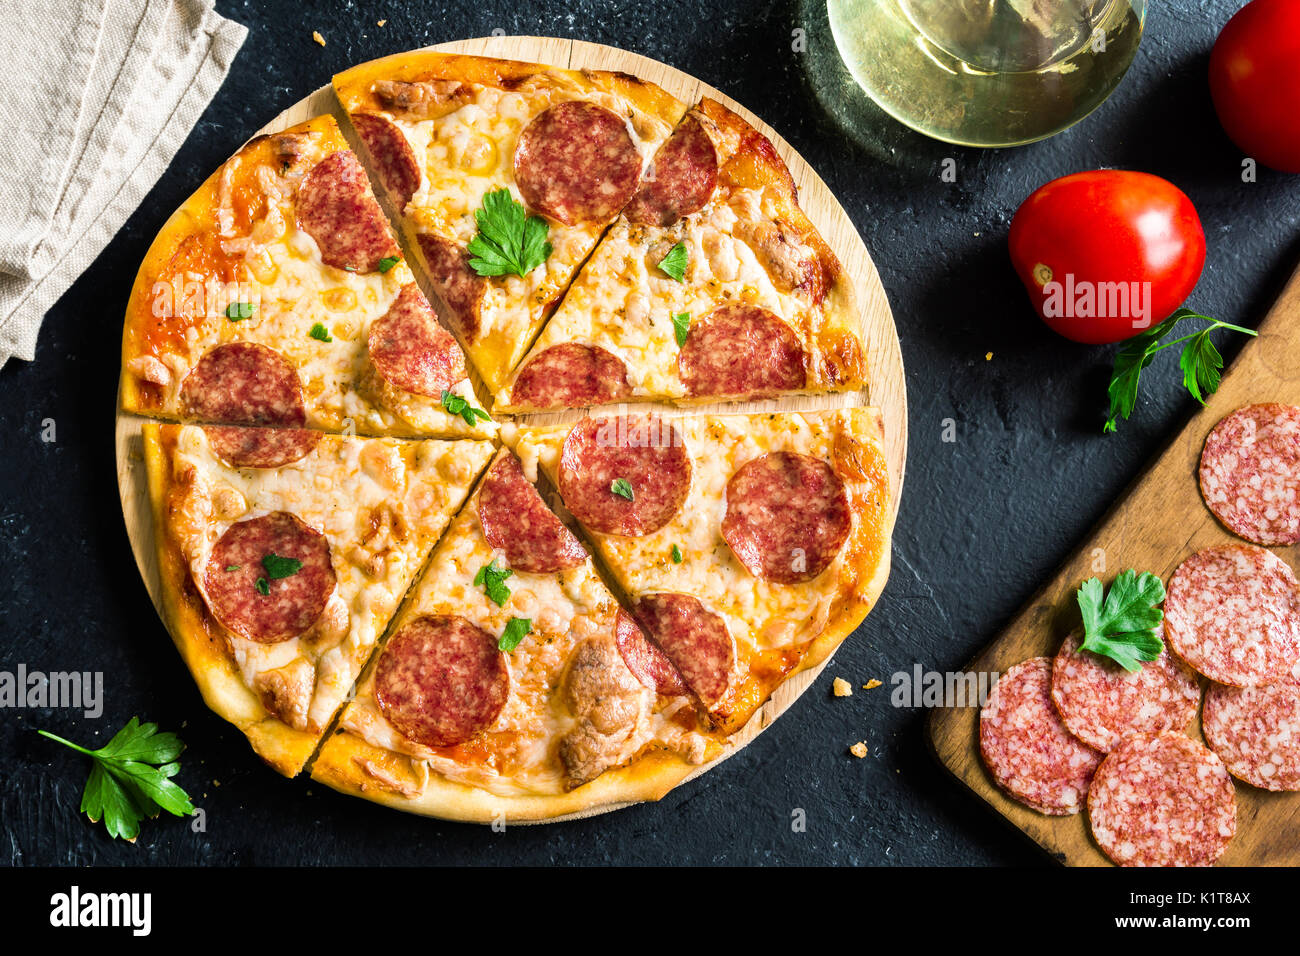 Pepperoni Pizza with ingredients - Fresh homemade pizza with pepperoni, cheese and tomato sauce and ingredients on rustic black stone background with  - Stock Image